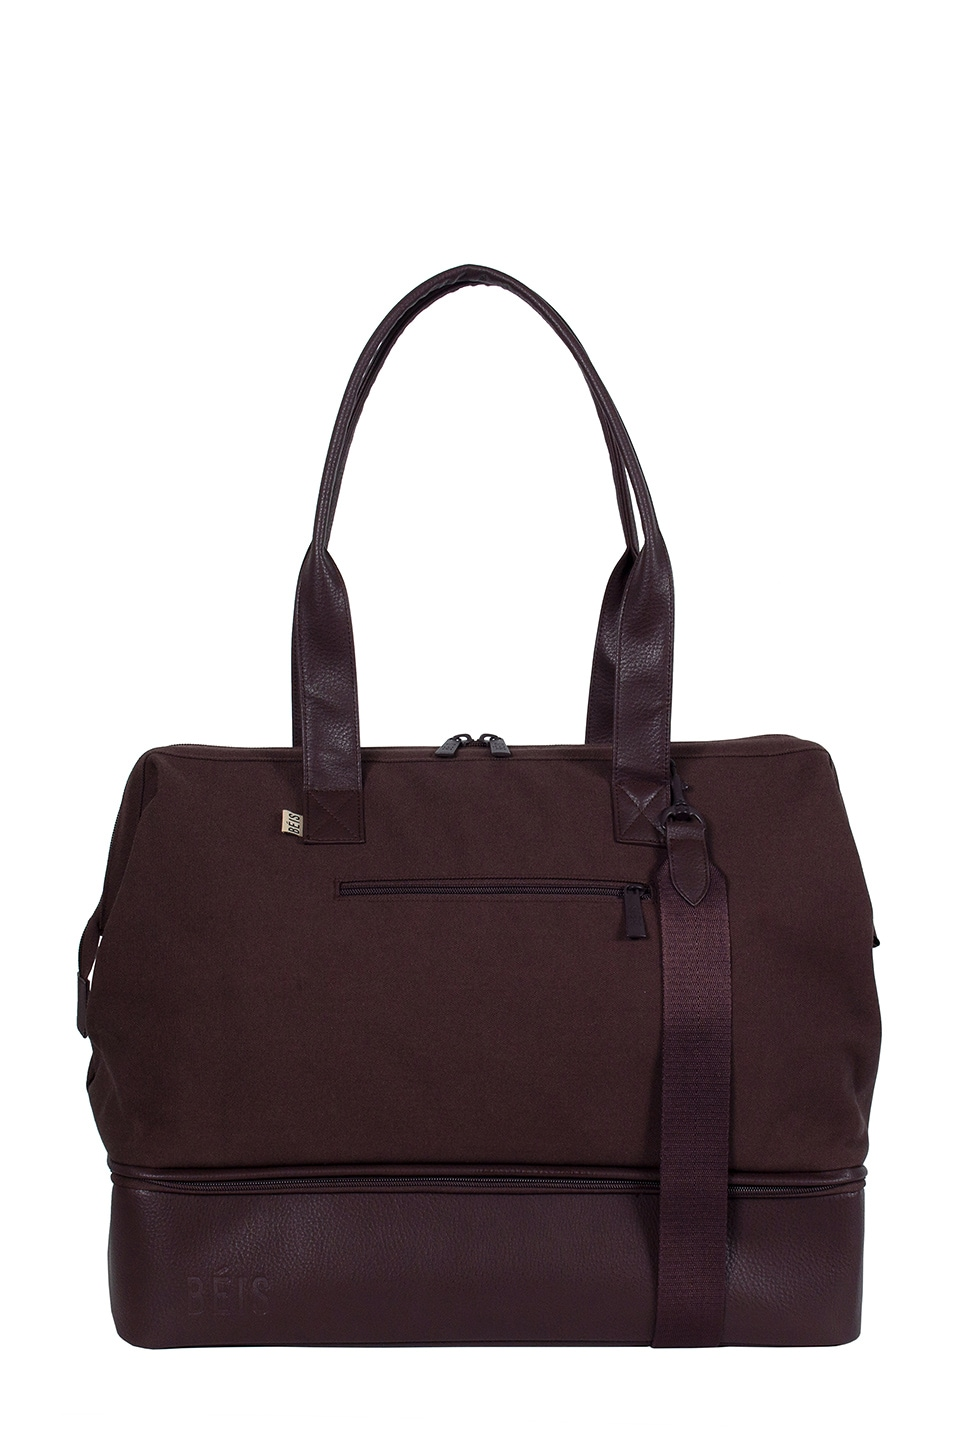 BEIS Weekend Bag in Espresso